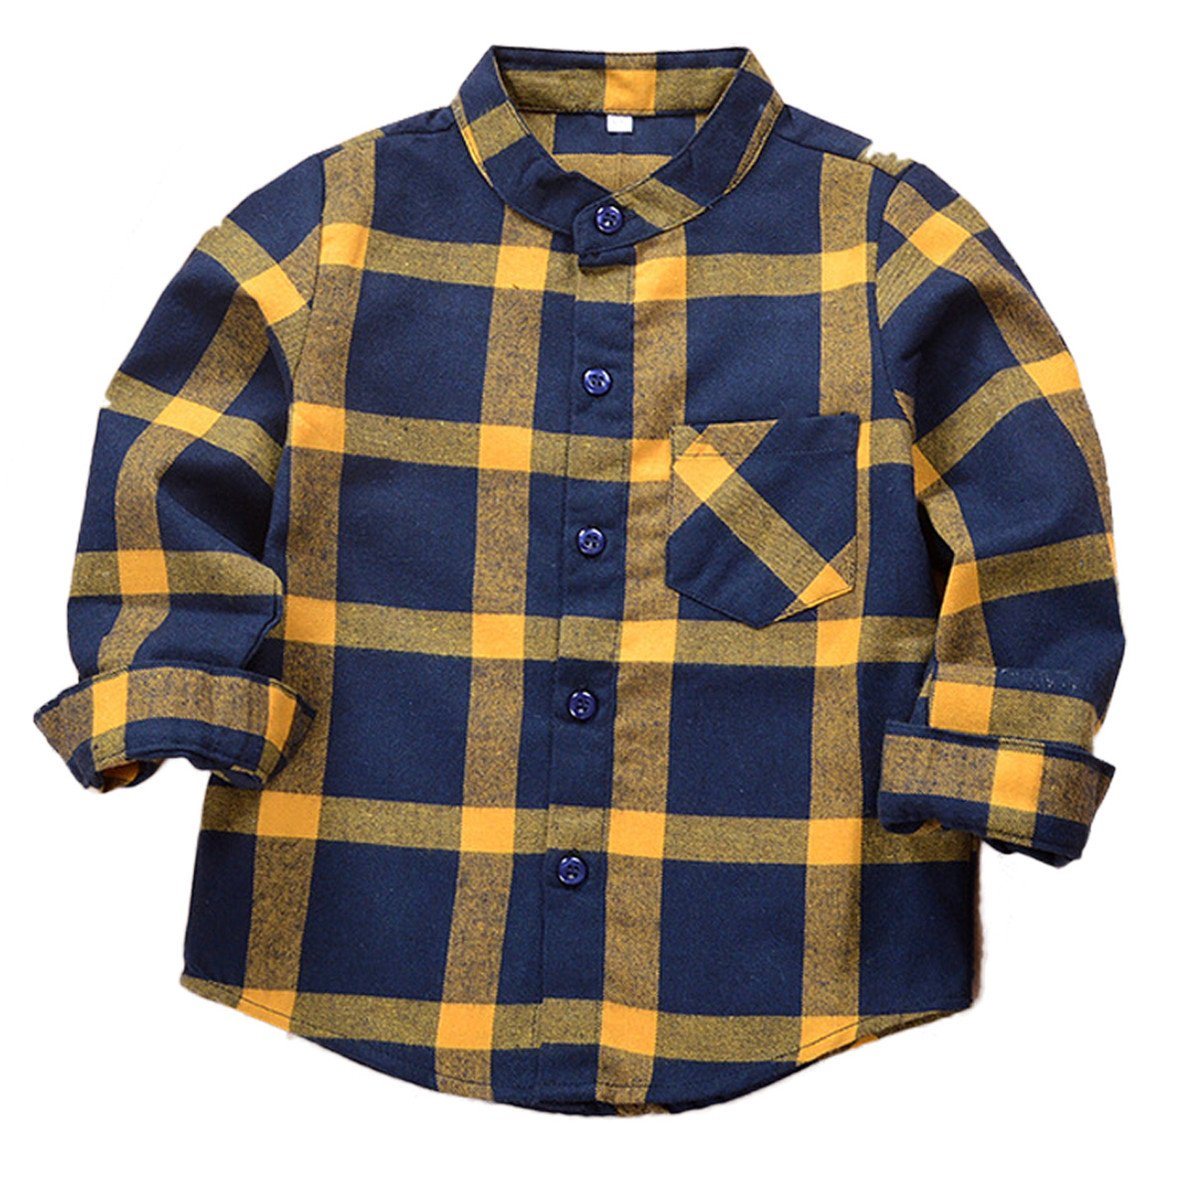 SERAIALDA Baby Boys Girls Button Down Plaid Flannel Long Sleeve Shirt 2T-3T